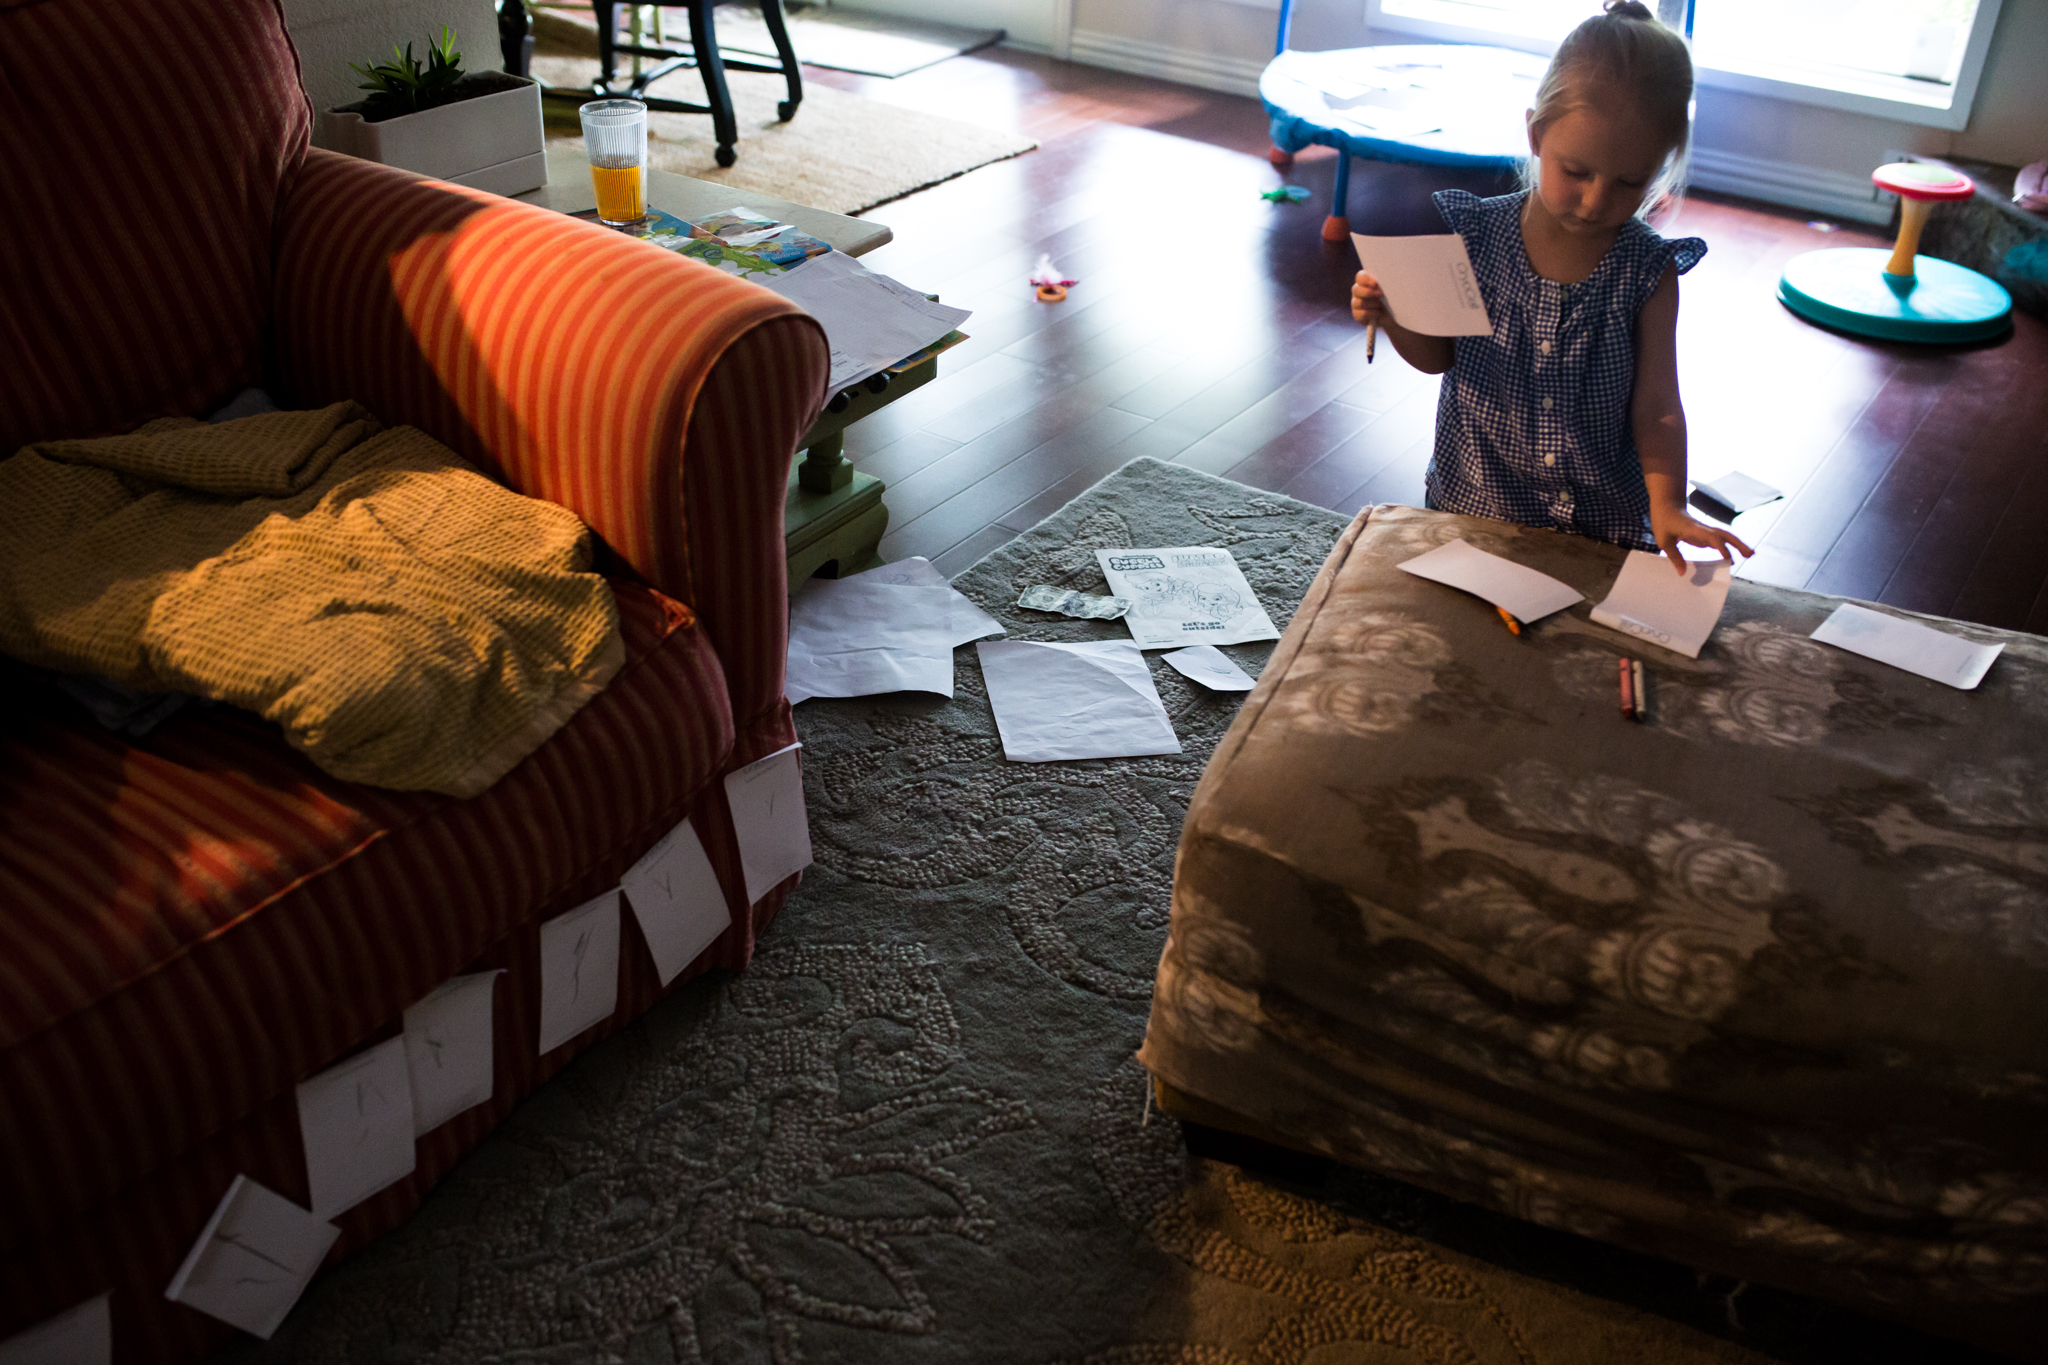 Lawren Rose Photography takes a picture of a little girl sticking paper all over the living room furniture during an in-home family session in farmers branch texas